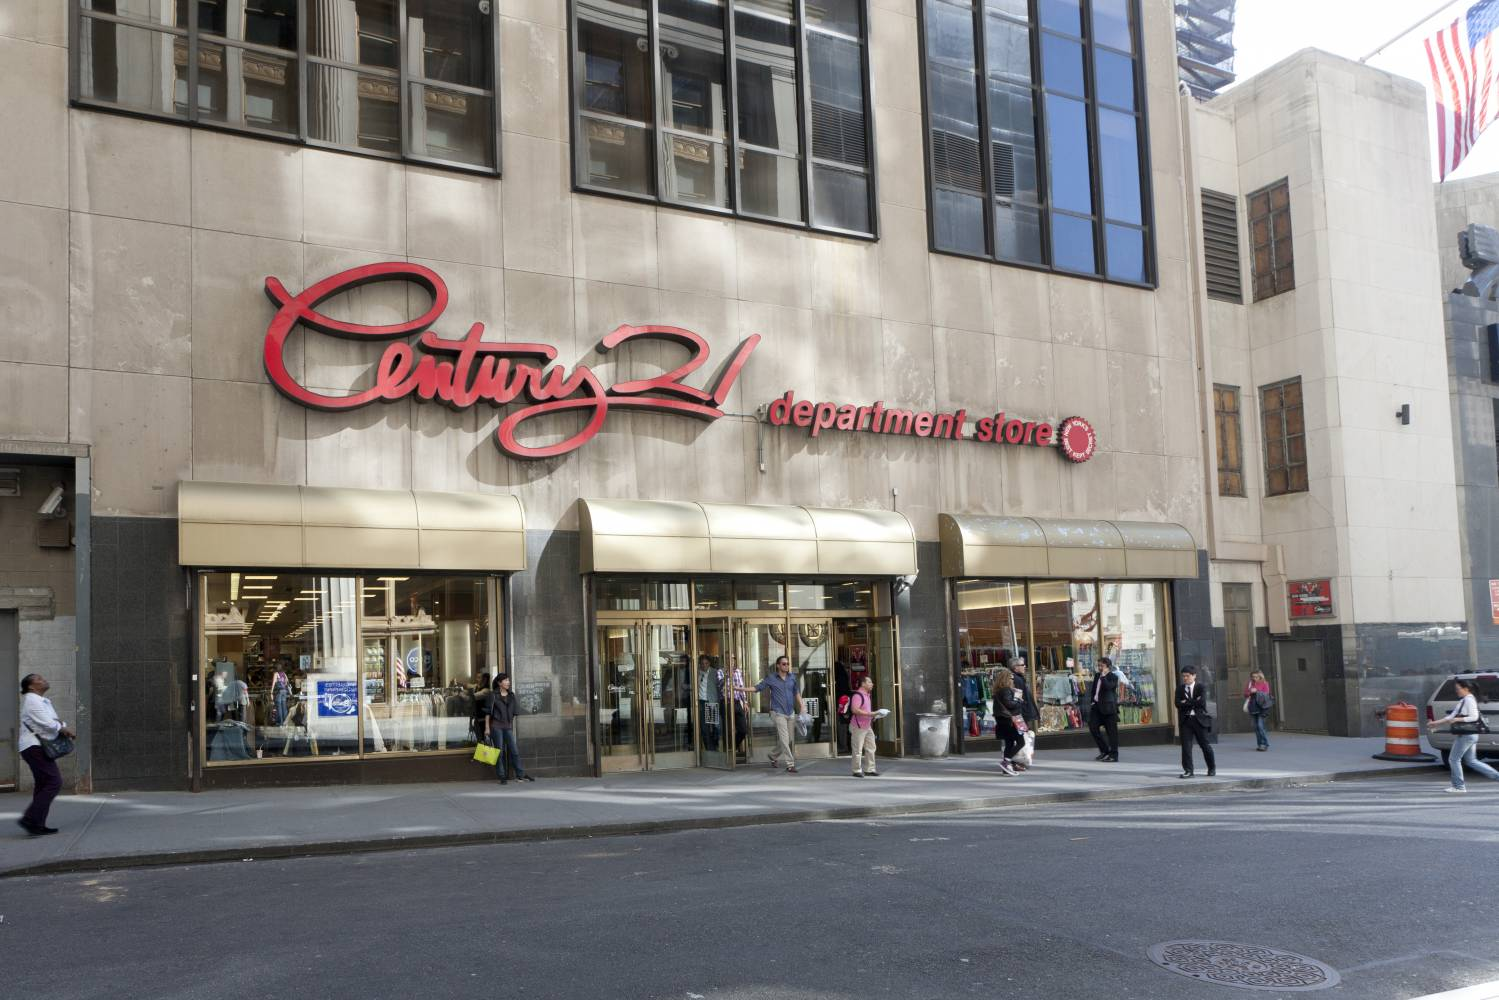 Century 21 Department Store—Downtown: Downtown Shopping